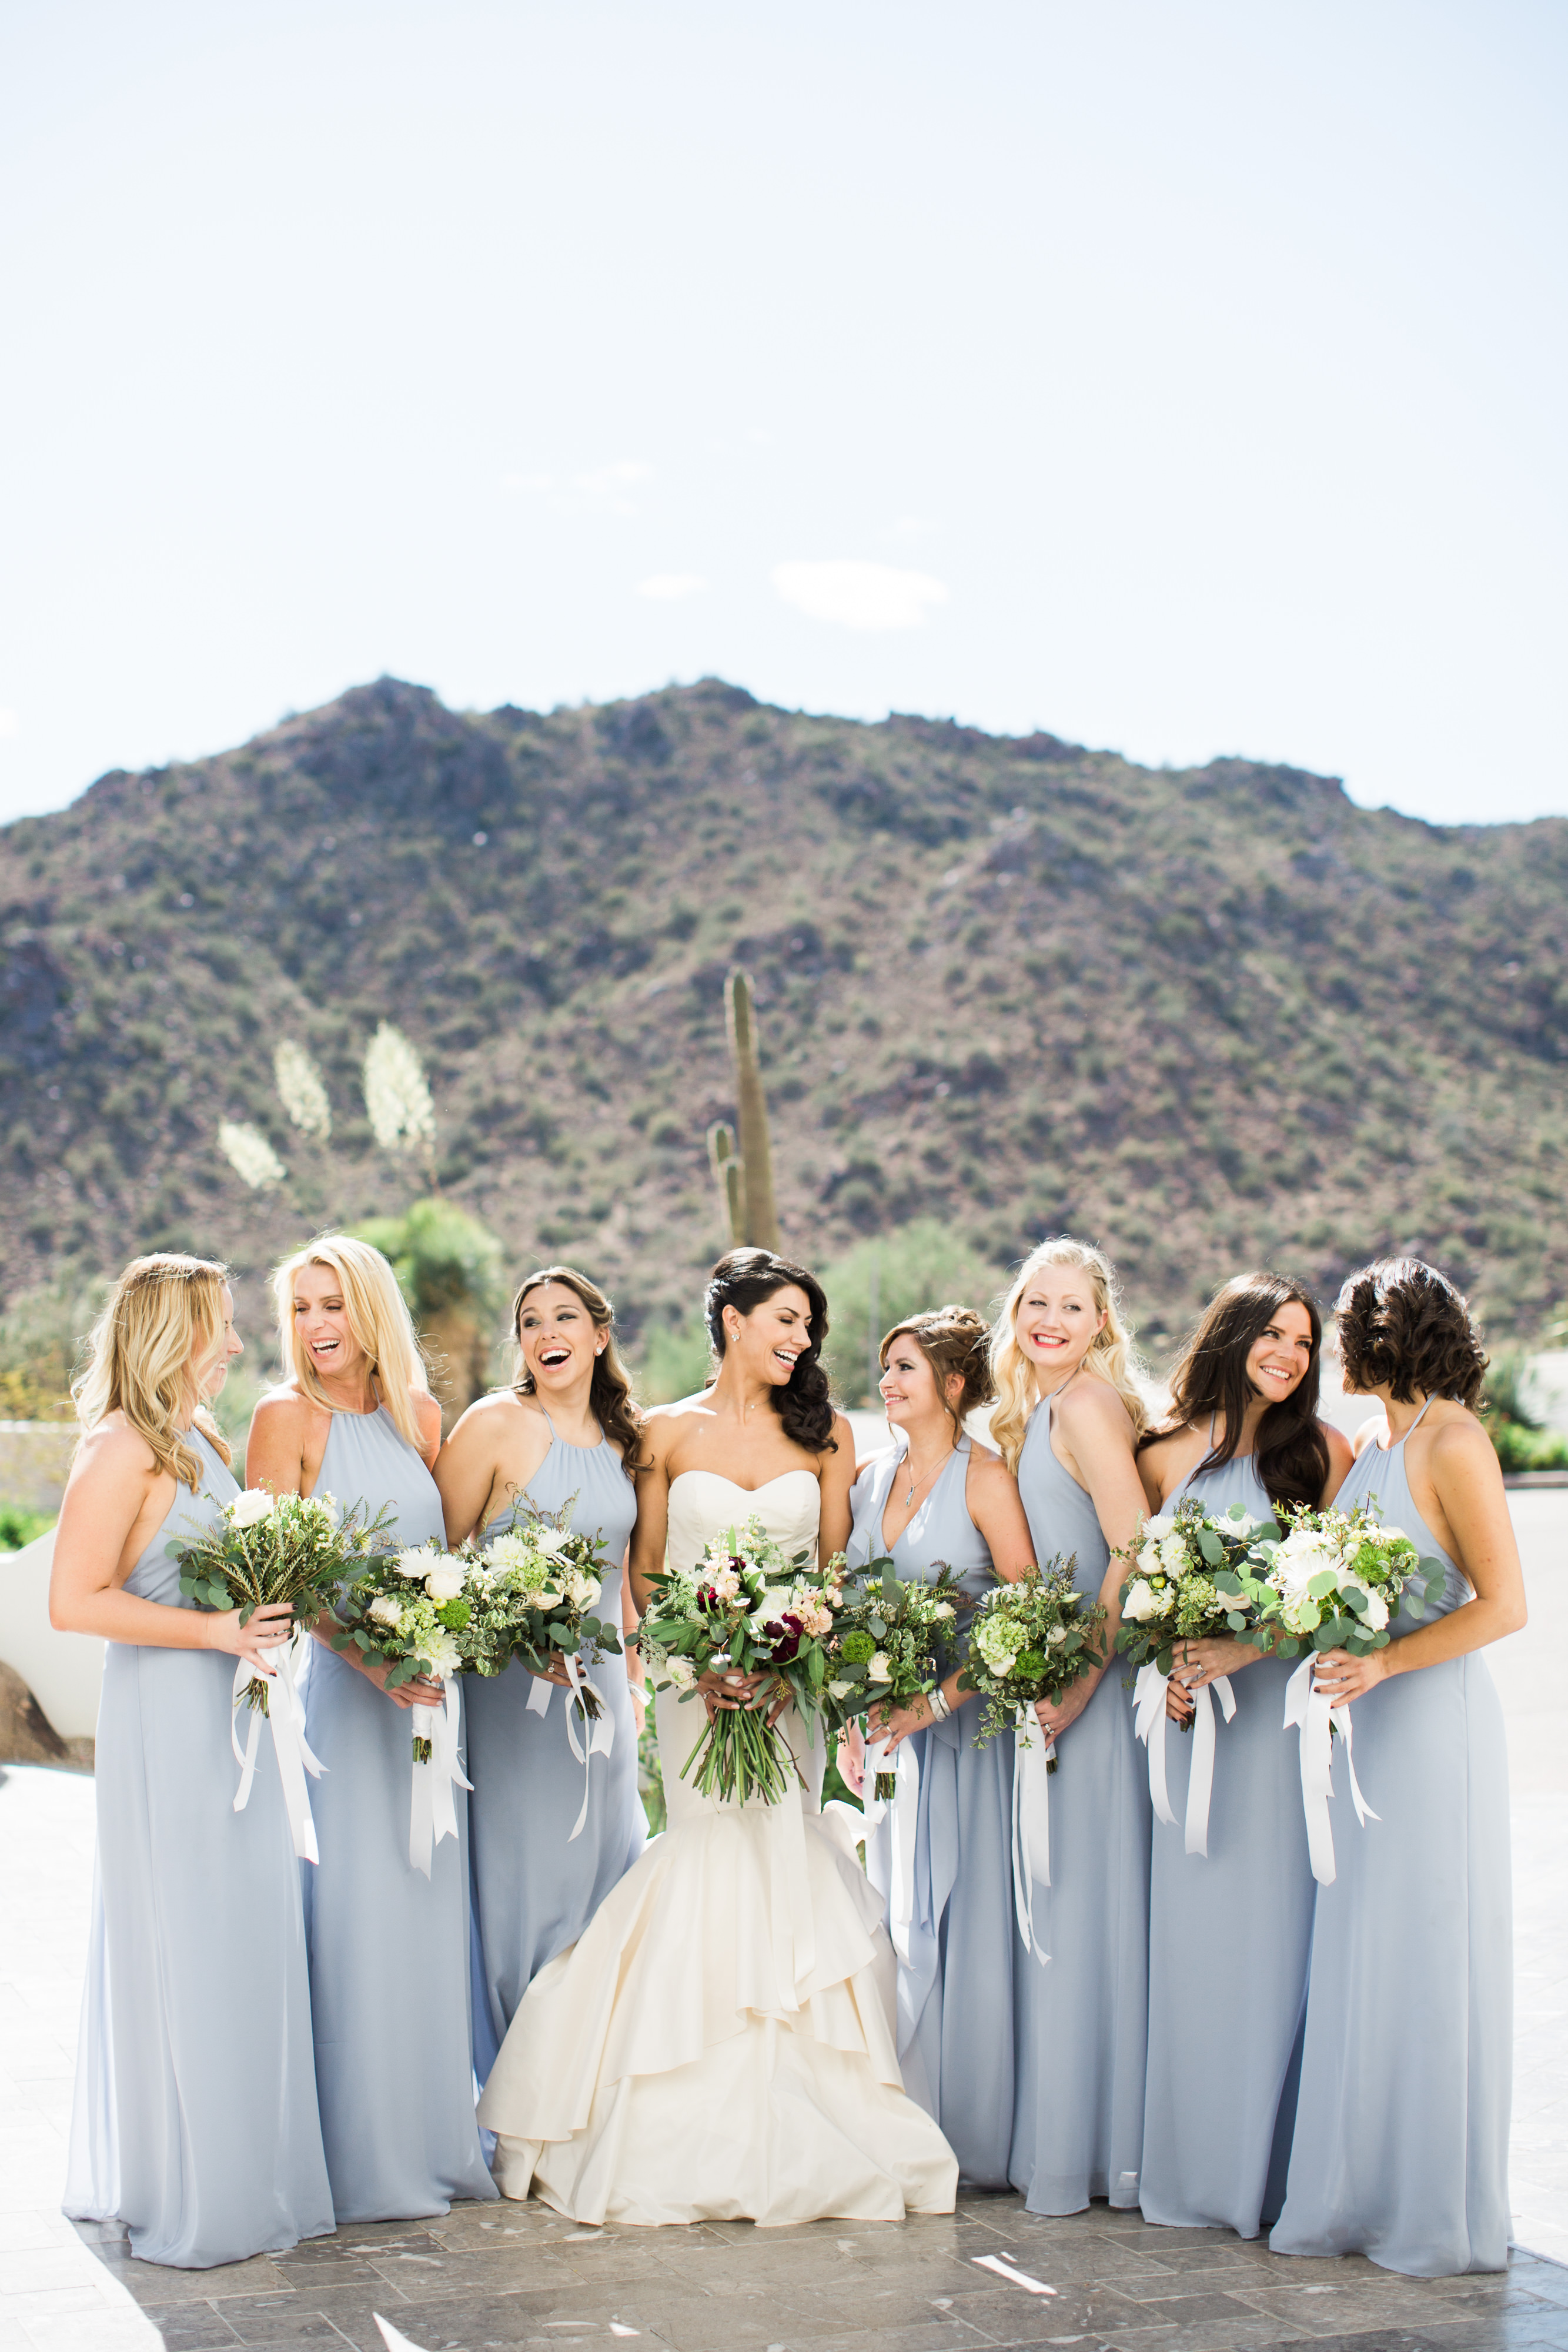 Copperwynd Wedding, Gretchen Wakeman Photography